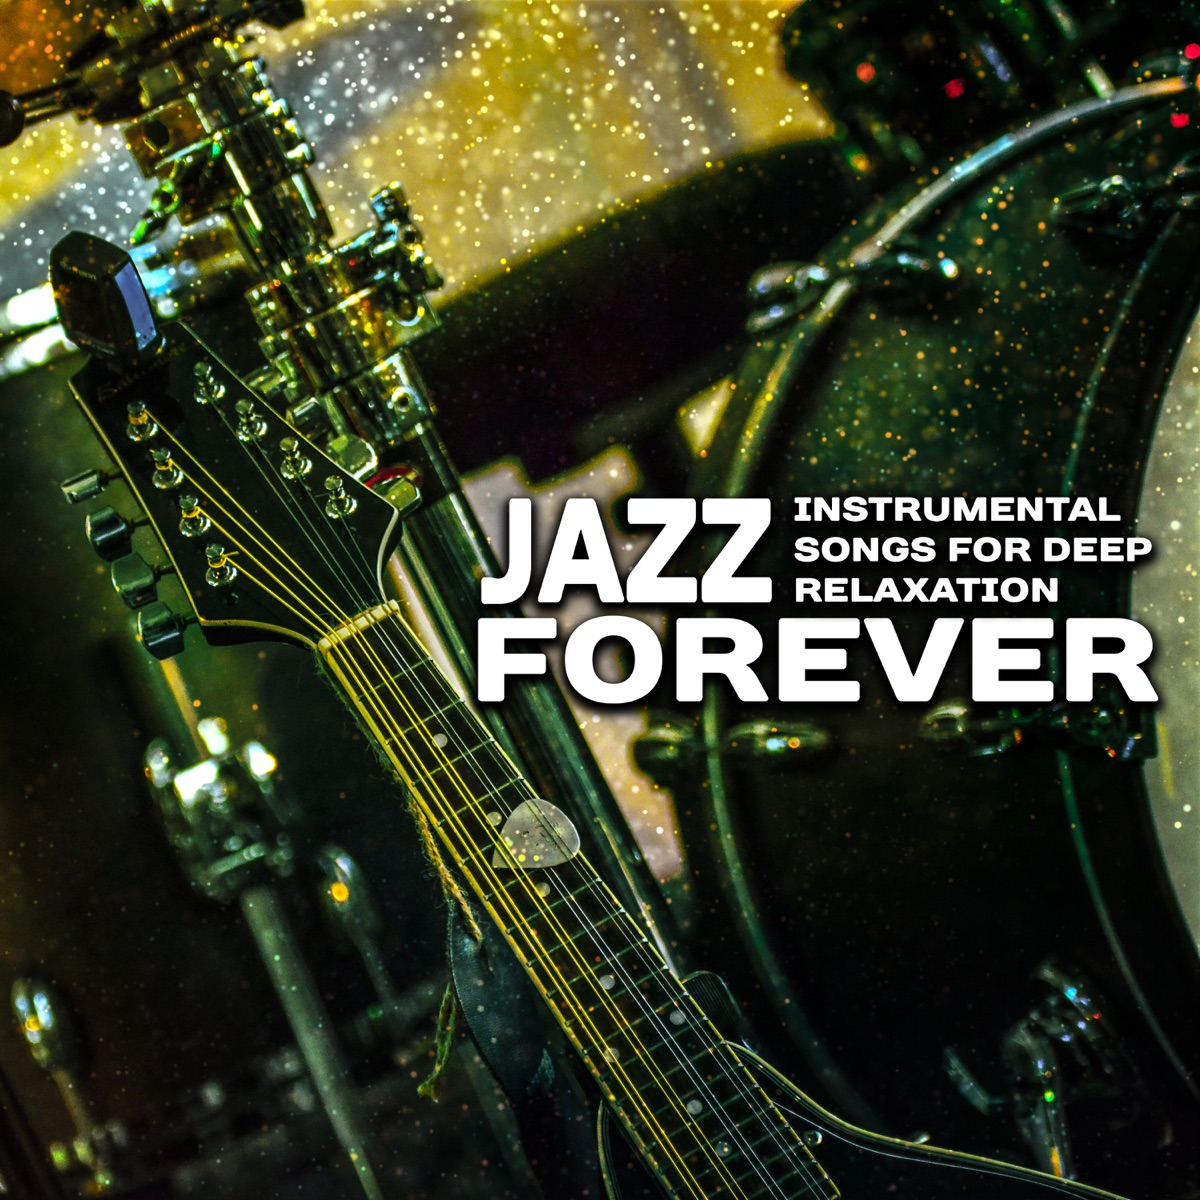 Jazz Forever: Instrumental Songs for Deep Relaxation